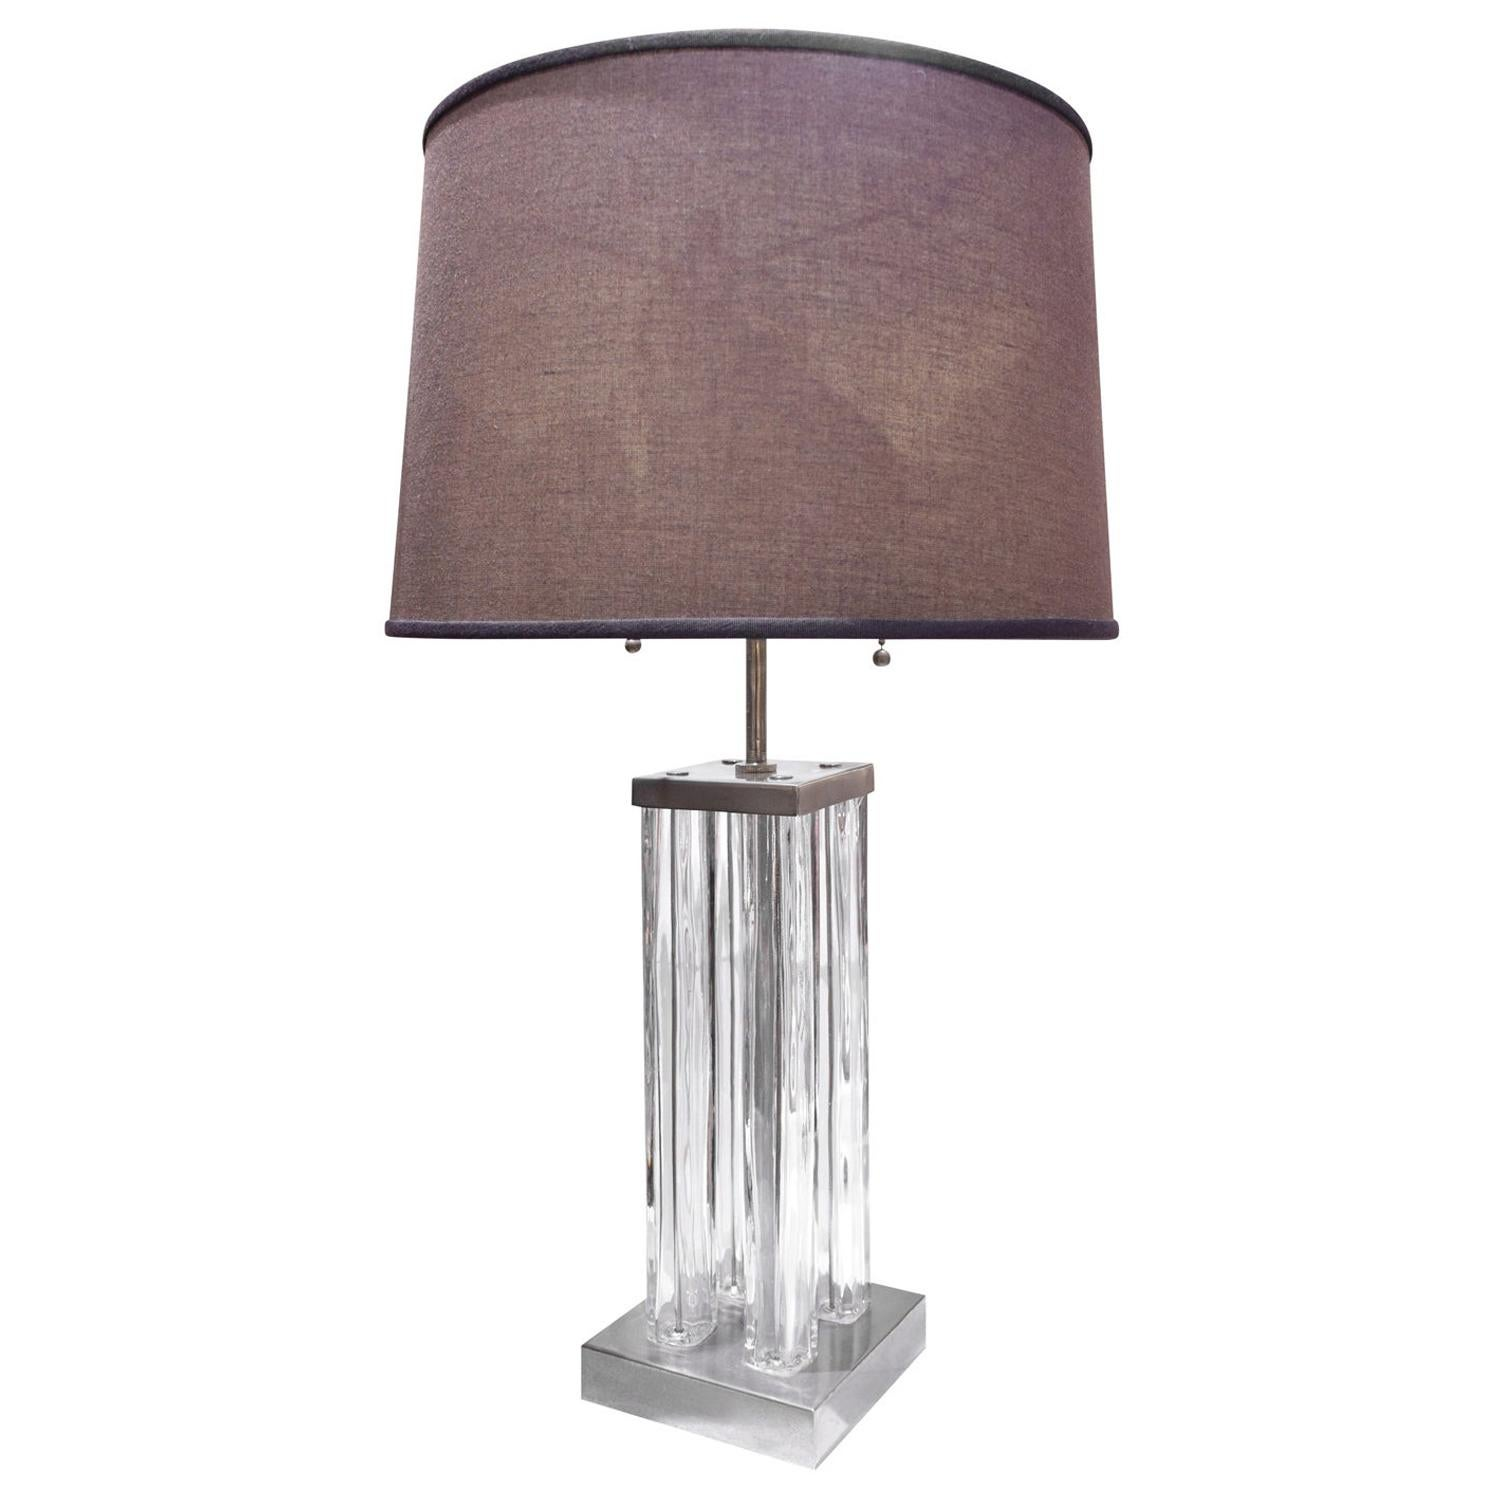 Chic Small Table/Desk Lamp in Steel and Glass, 1930s